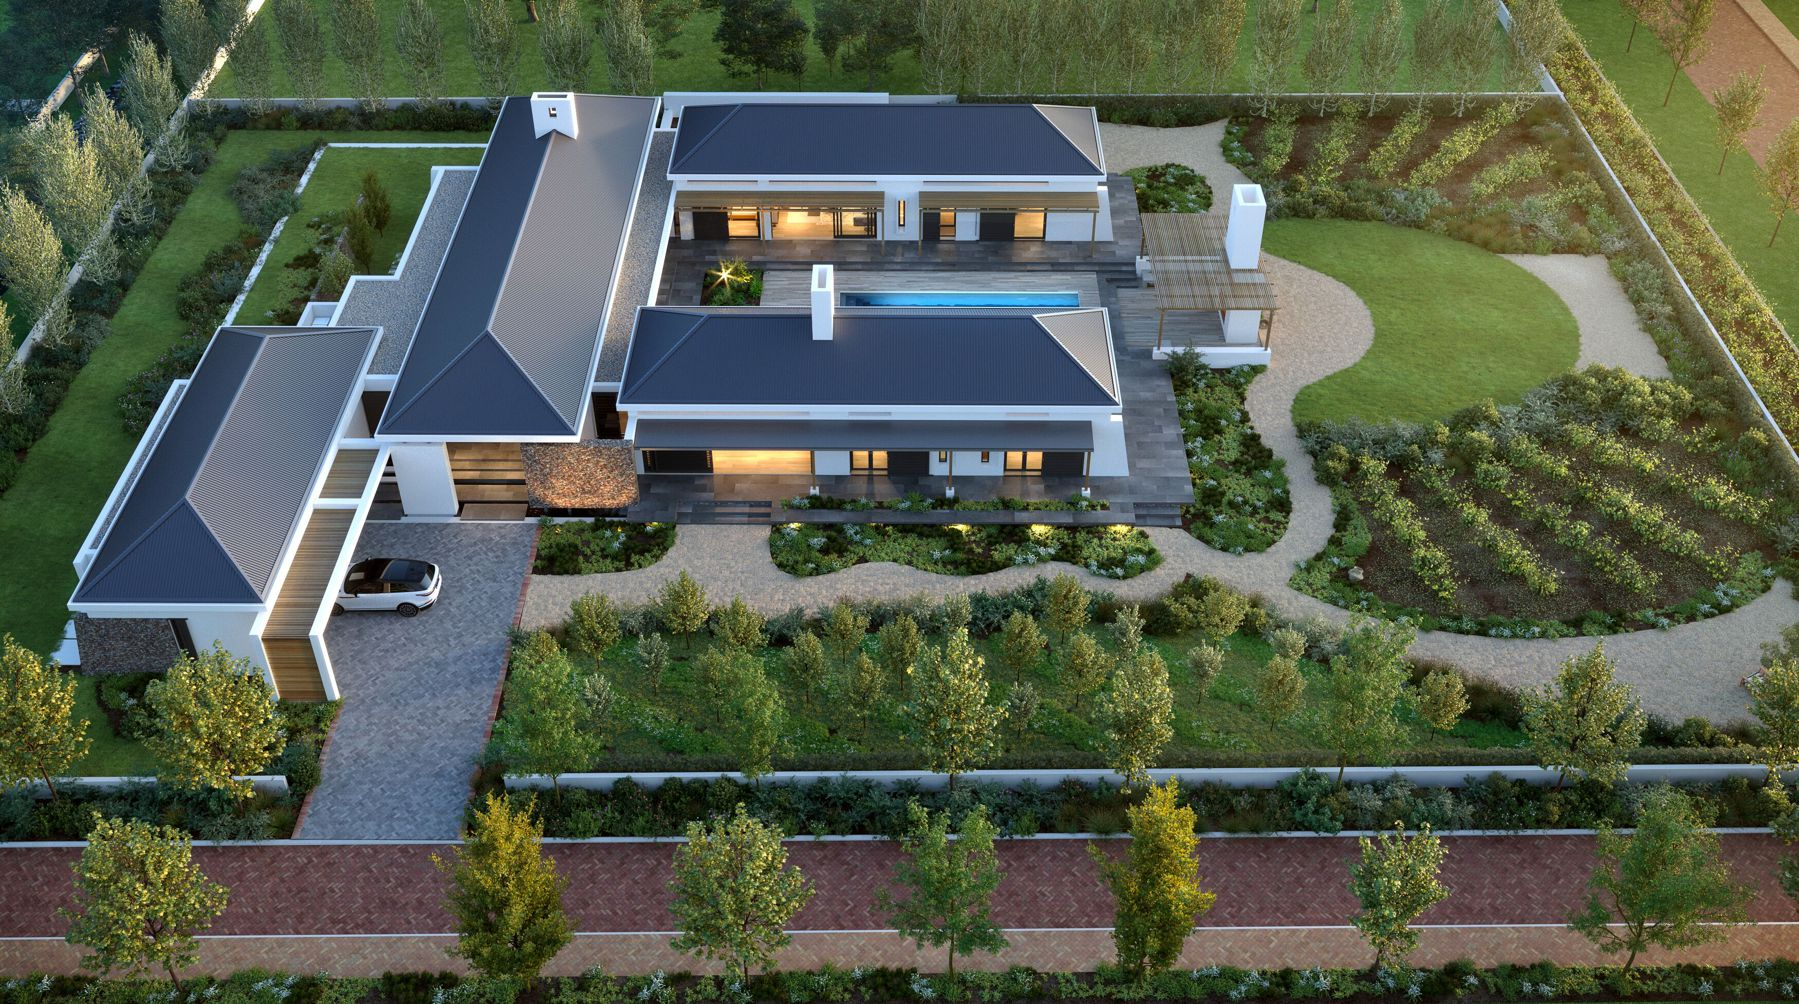 images/acres7/phillips-van-jaarsveldt-architects-acres-plot-75.jpg